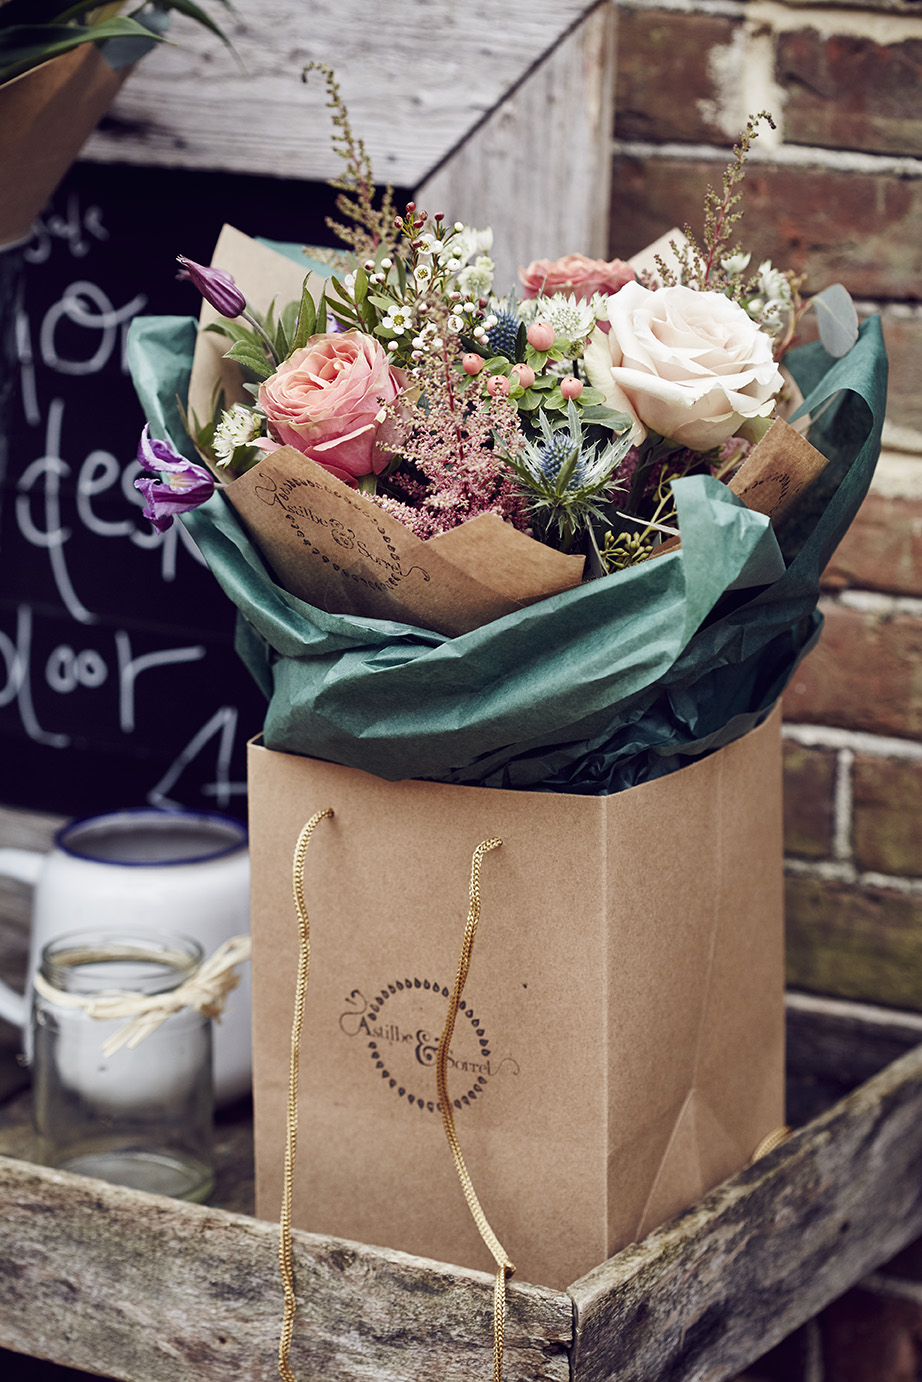 Hand-tied gift bouquets from £30.00  Photography by Alun Callendar